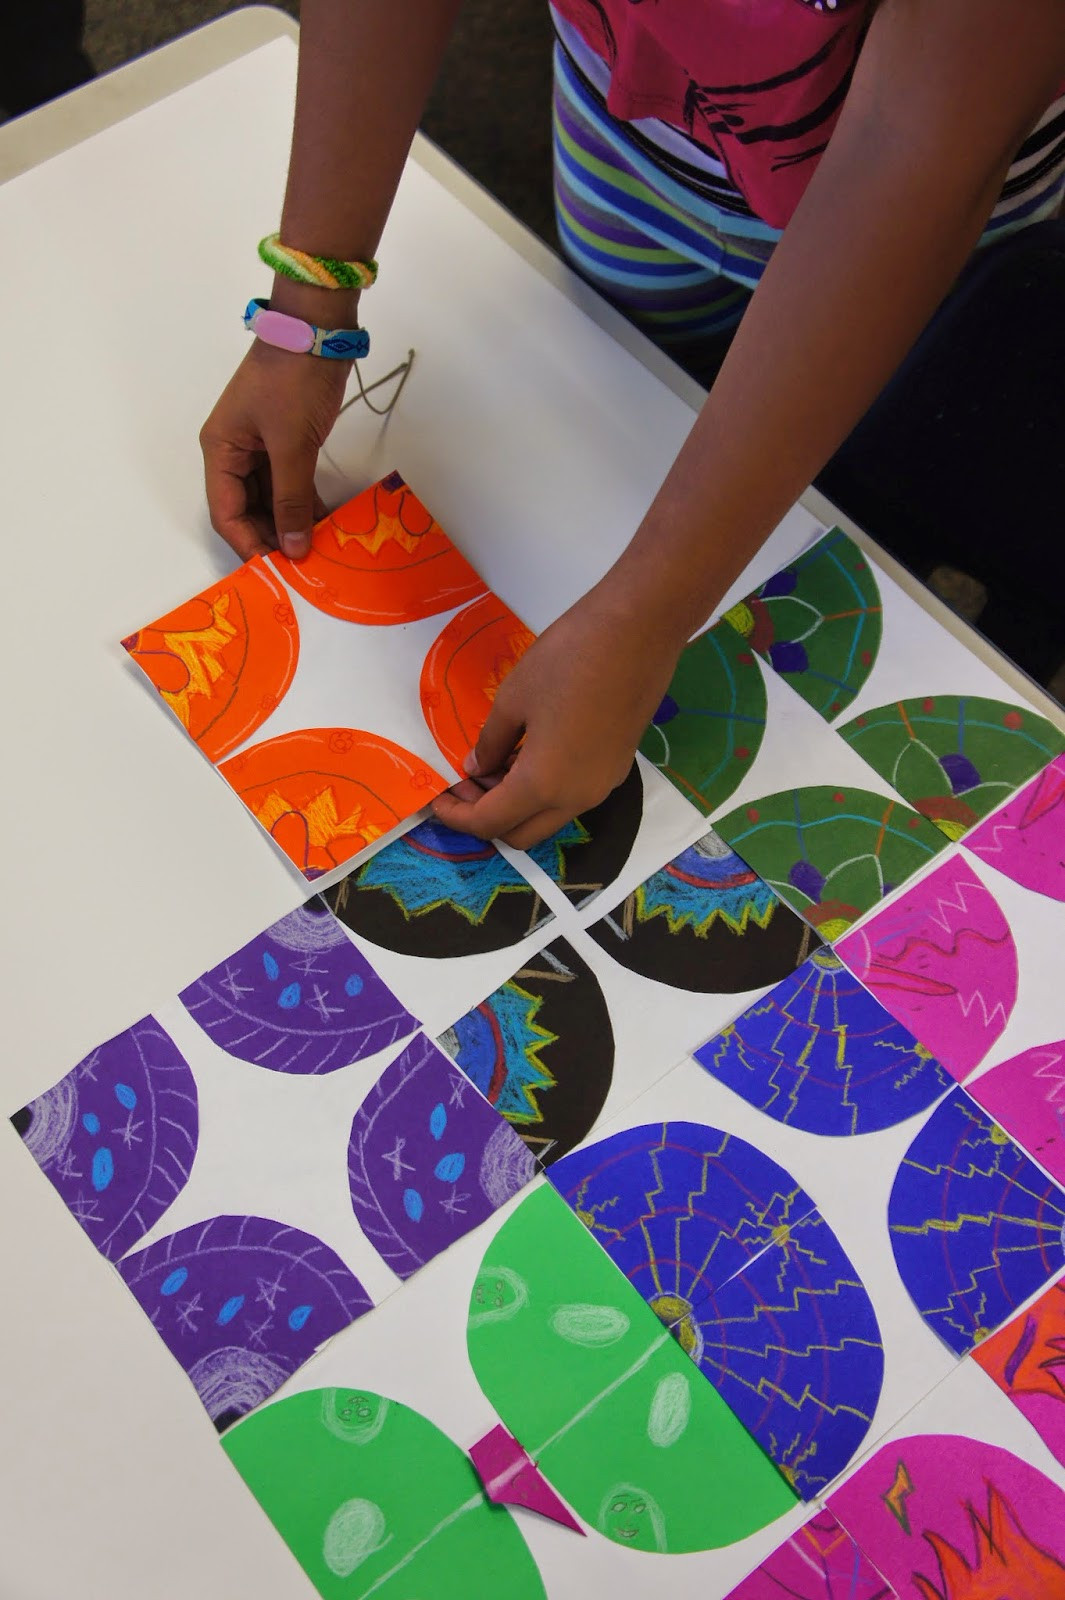 Best ideas about Group Art Project For Kids . Save or Pin shine brite zamorano we ll keep on biggering and biggering Now.